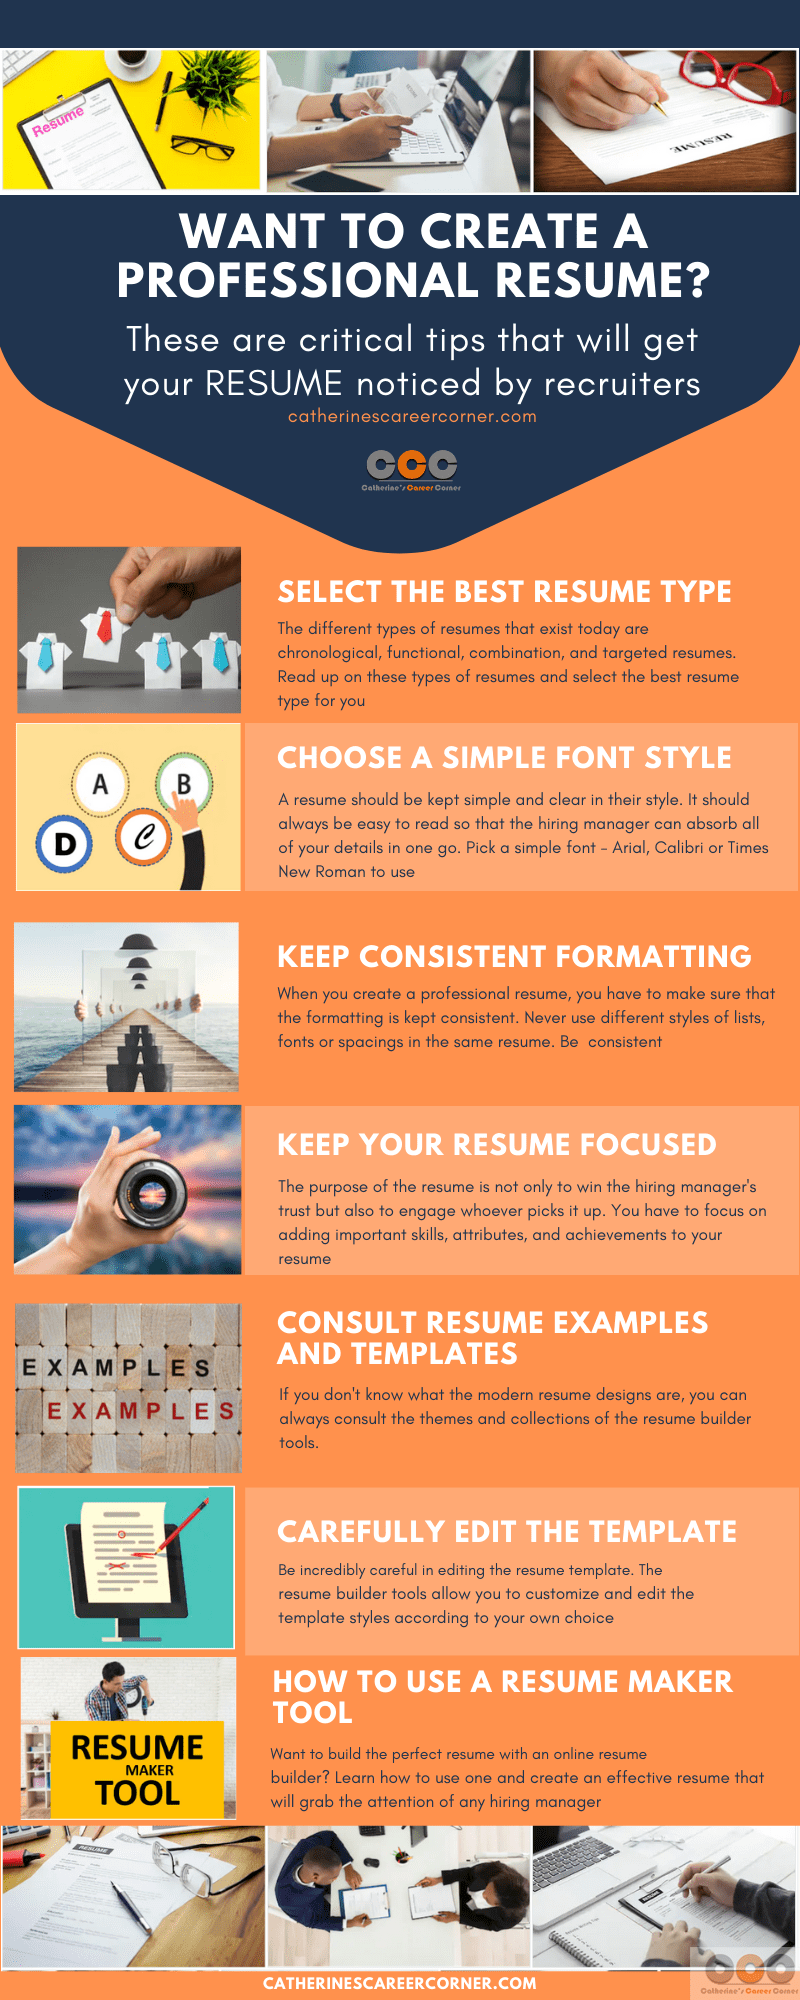 Infographic: How to create a professional resume